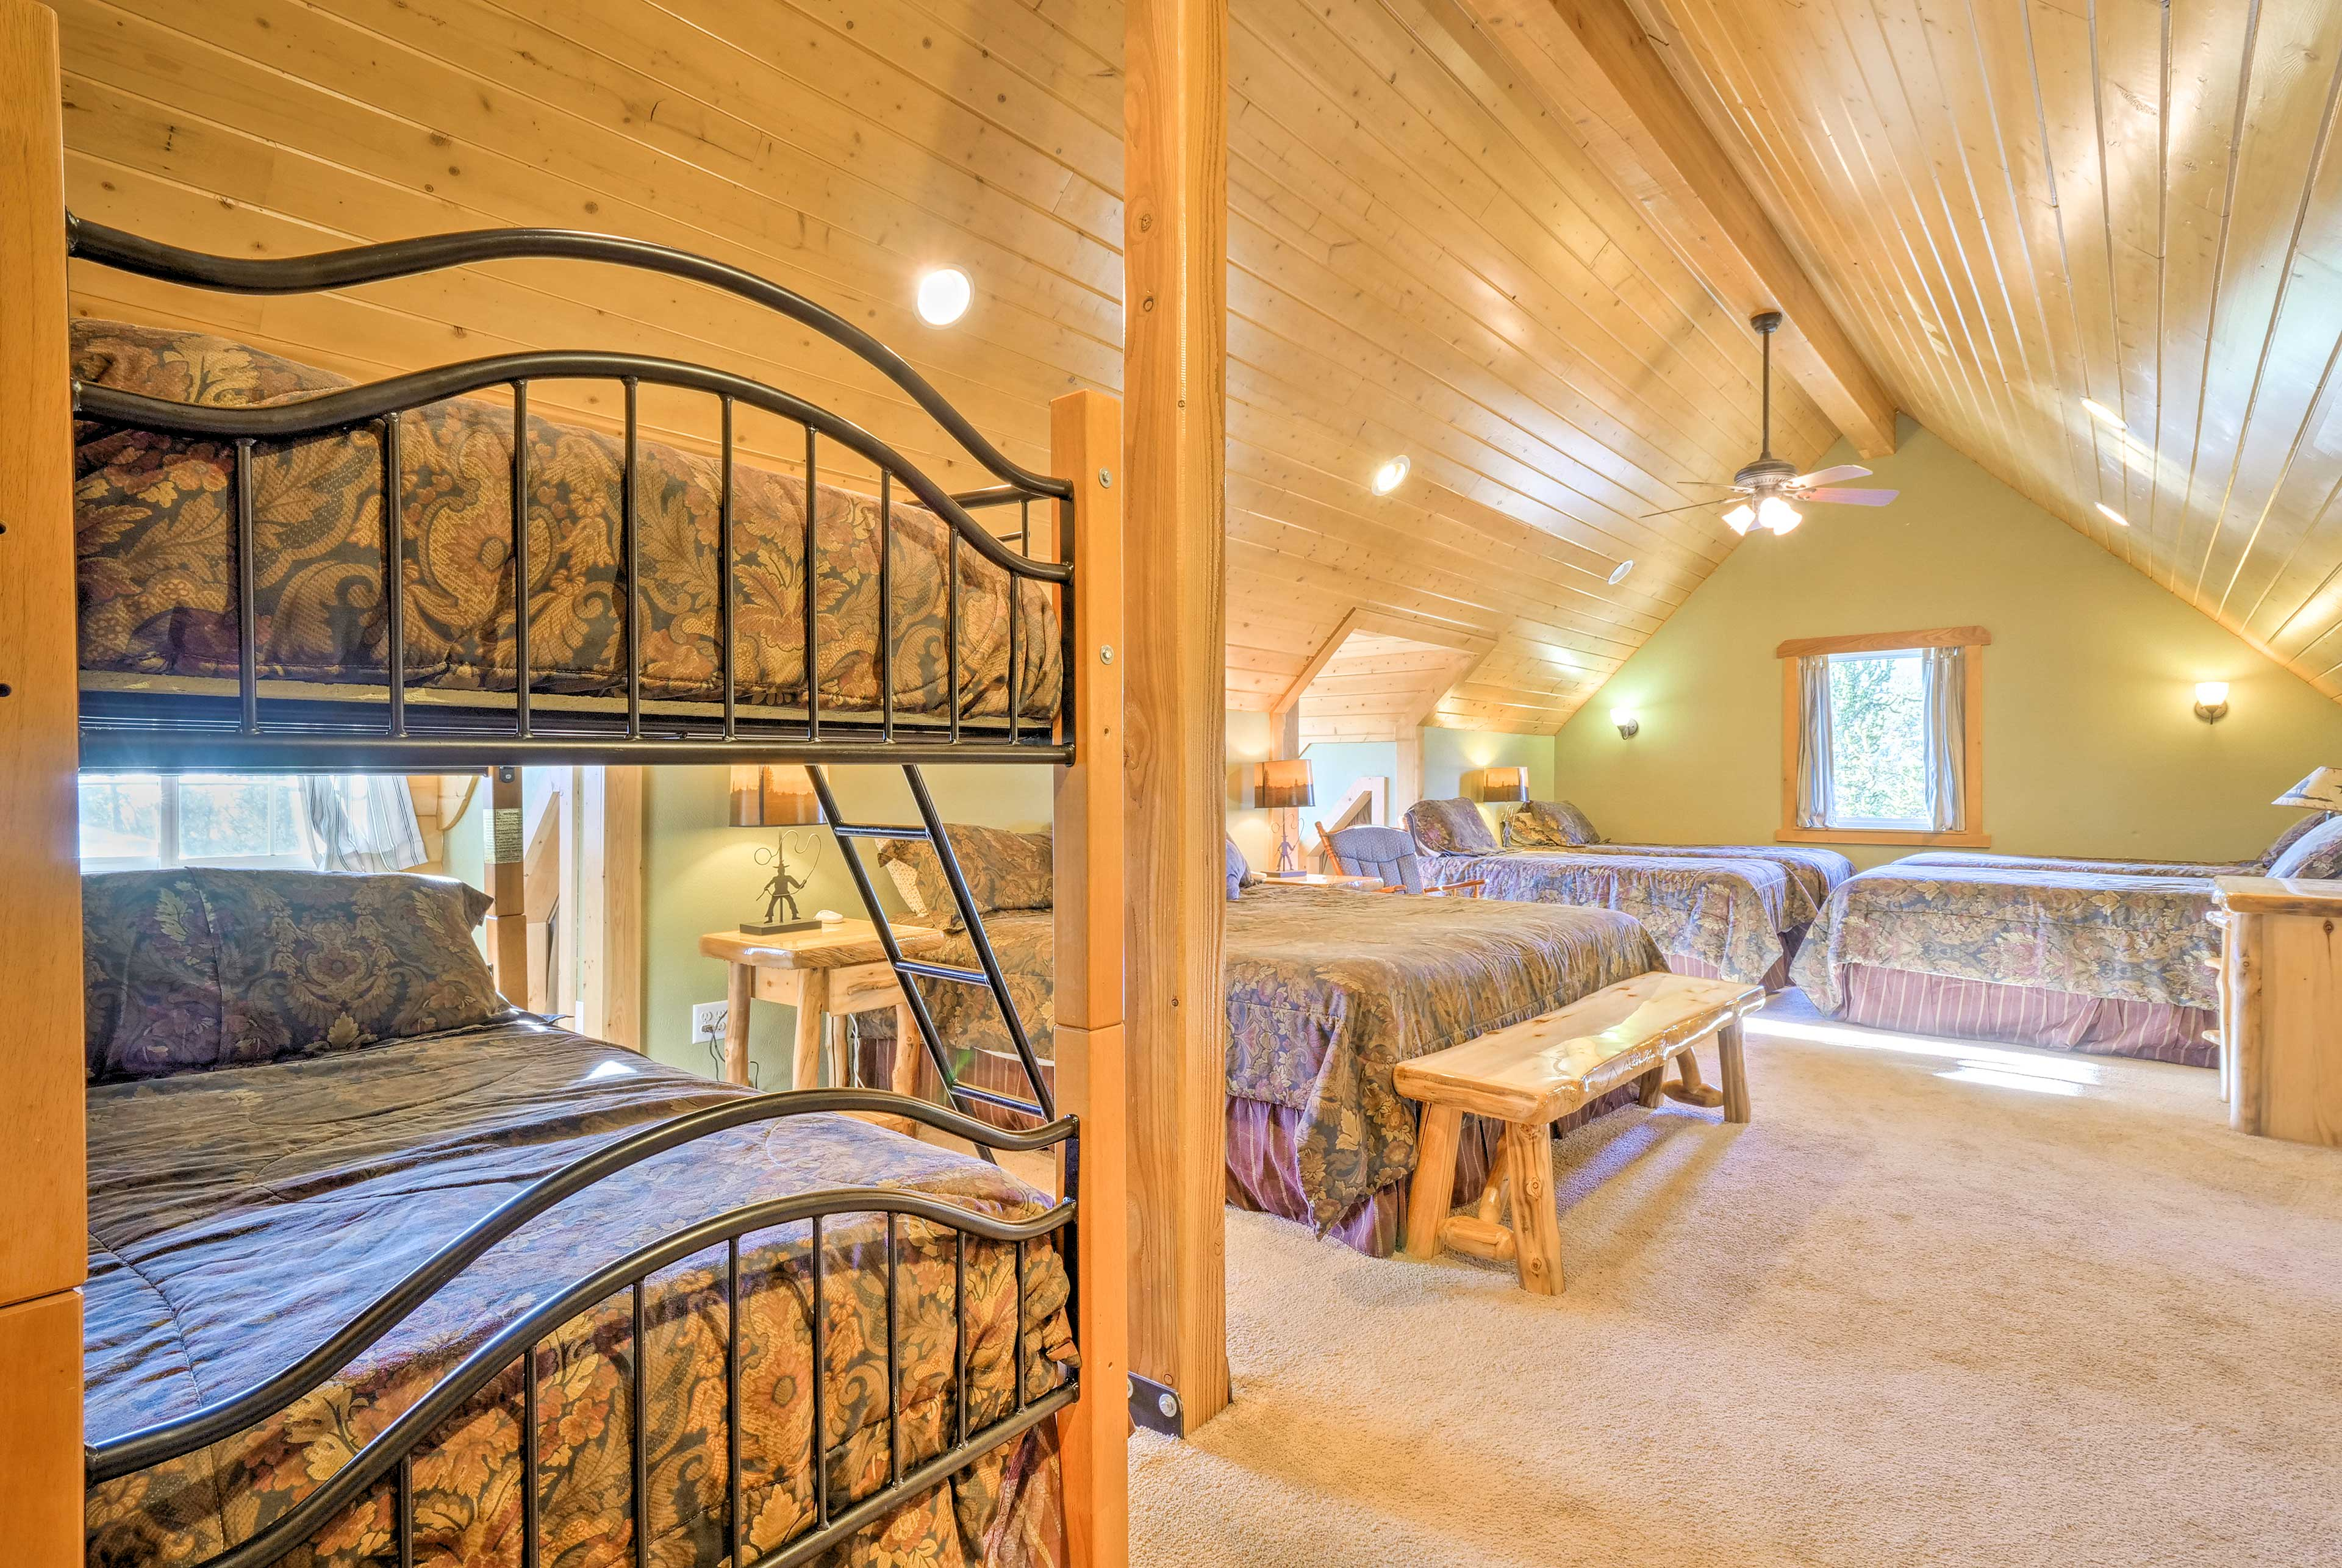 The well-appointed bedroom houses 4 twins, 1 twin-over-twin bunk bed and 1 king.